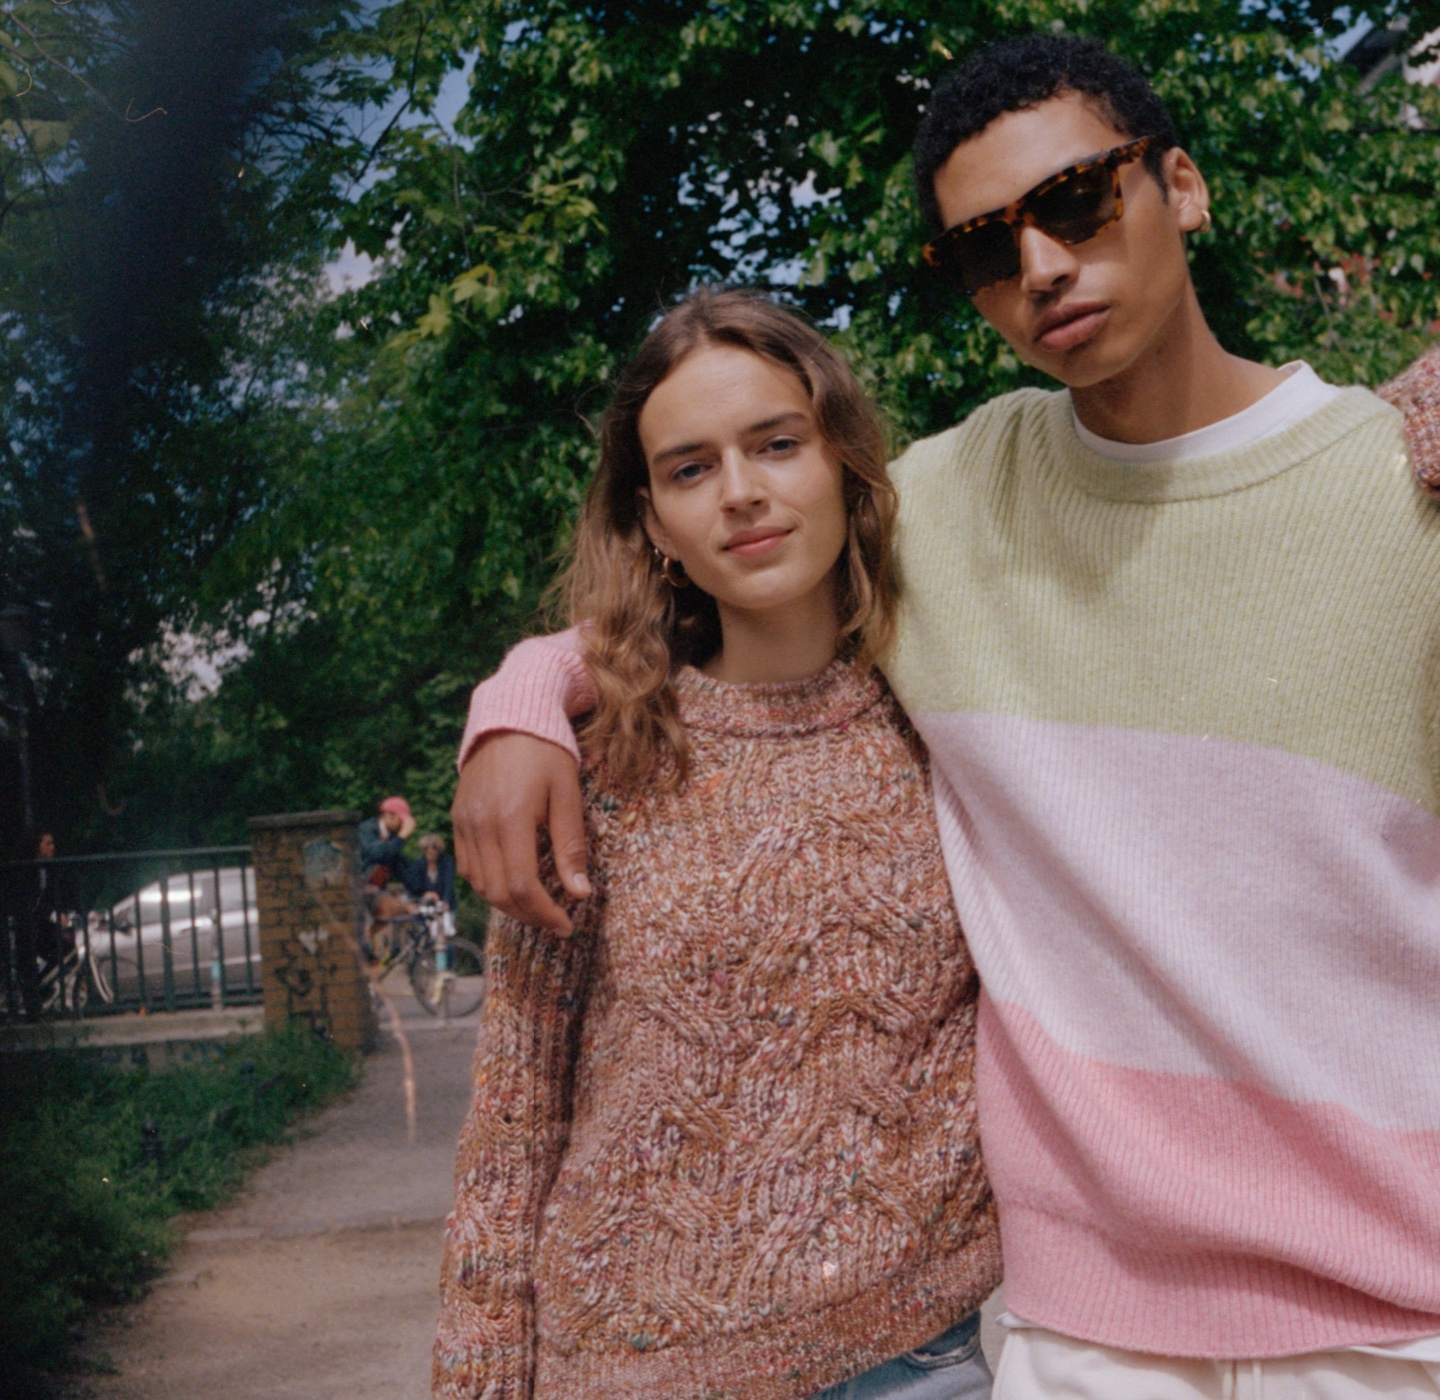 Knitwear campaign adults 2021